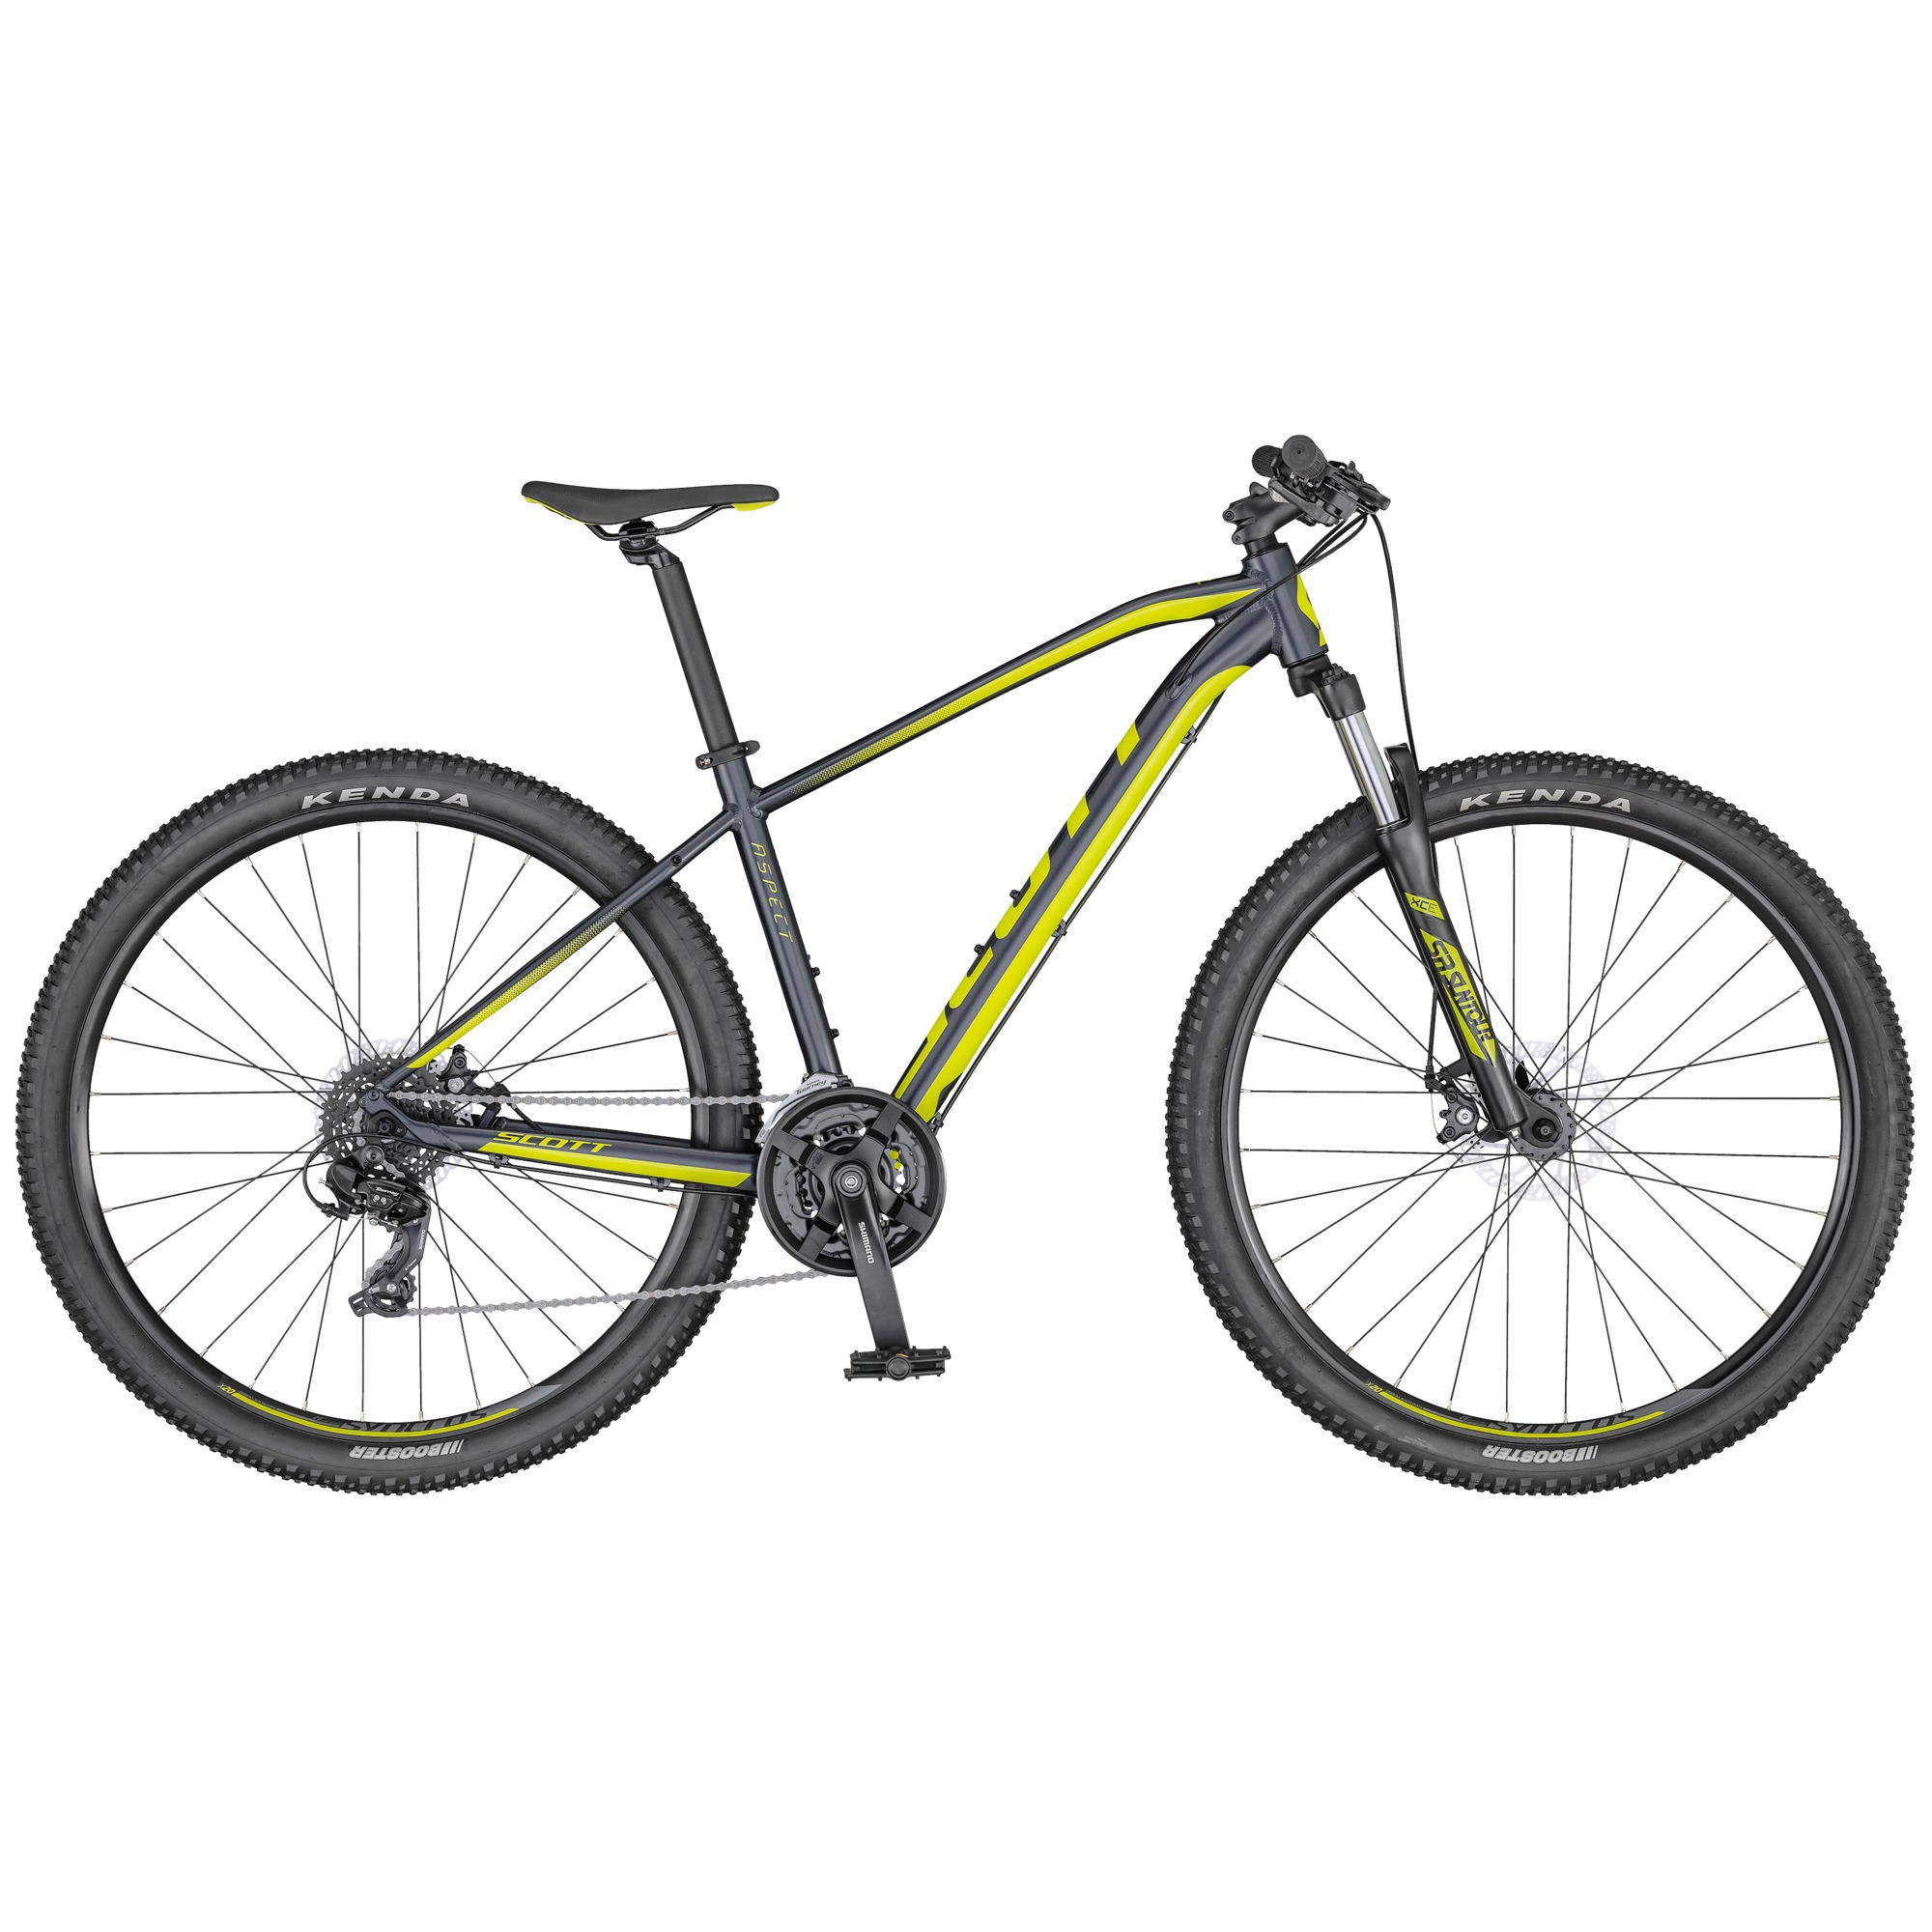 2020 Scott Aspect 970 Hardtail Mountain Bike in Grey/Yellow | MTB